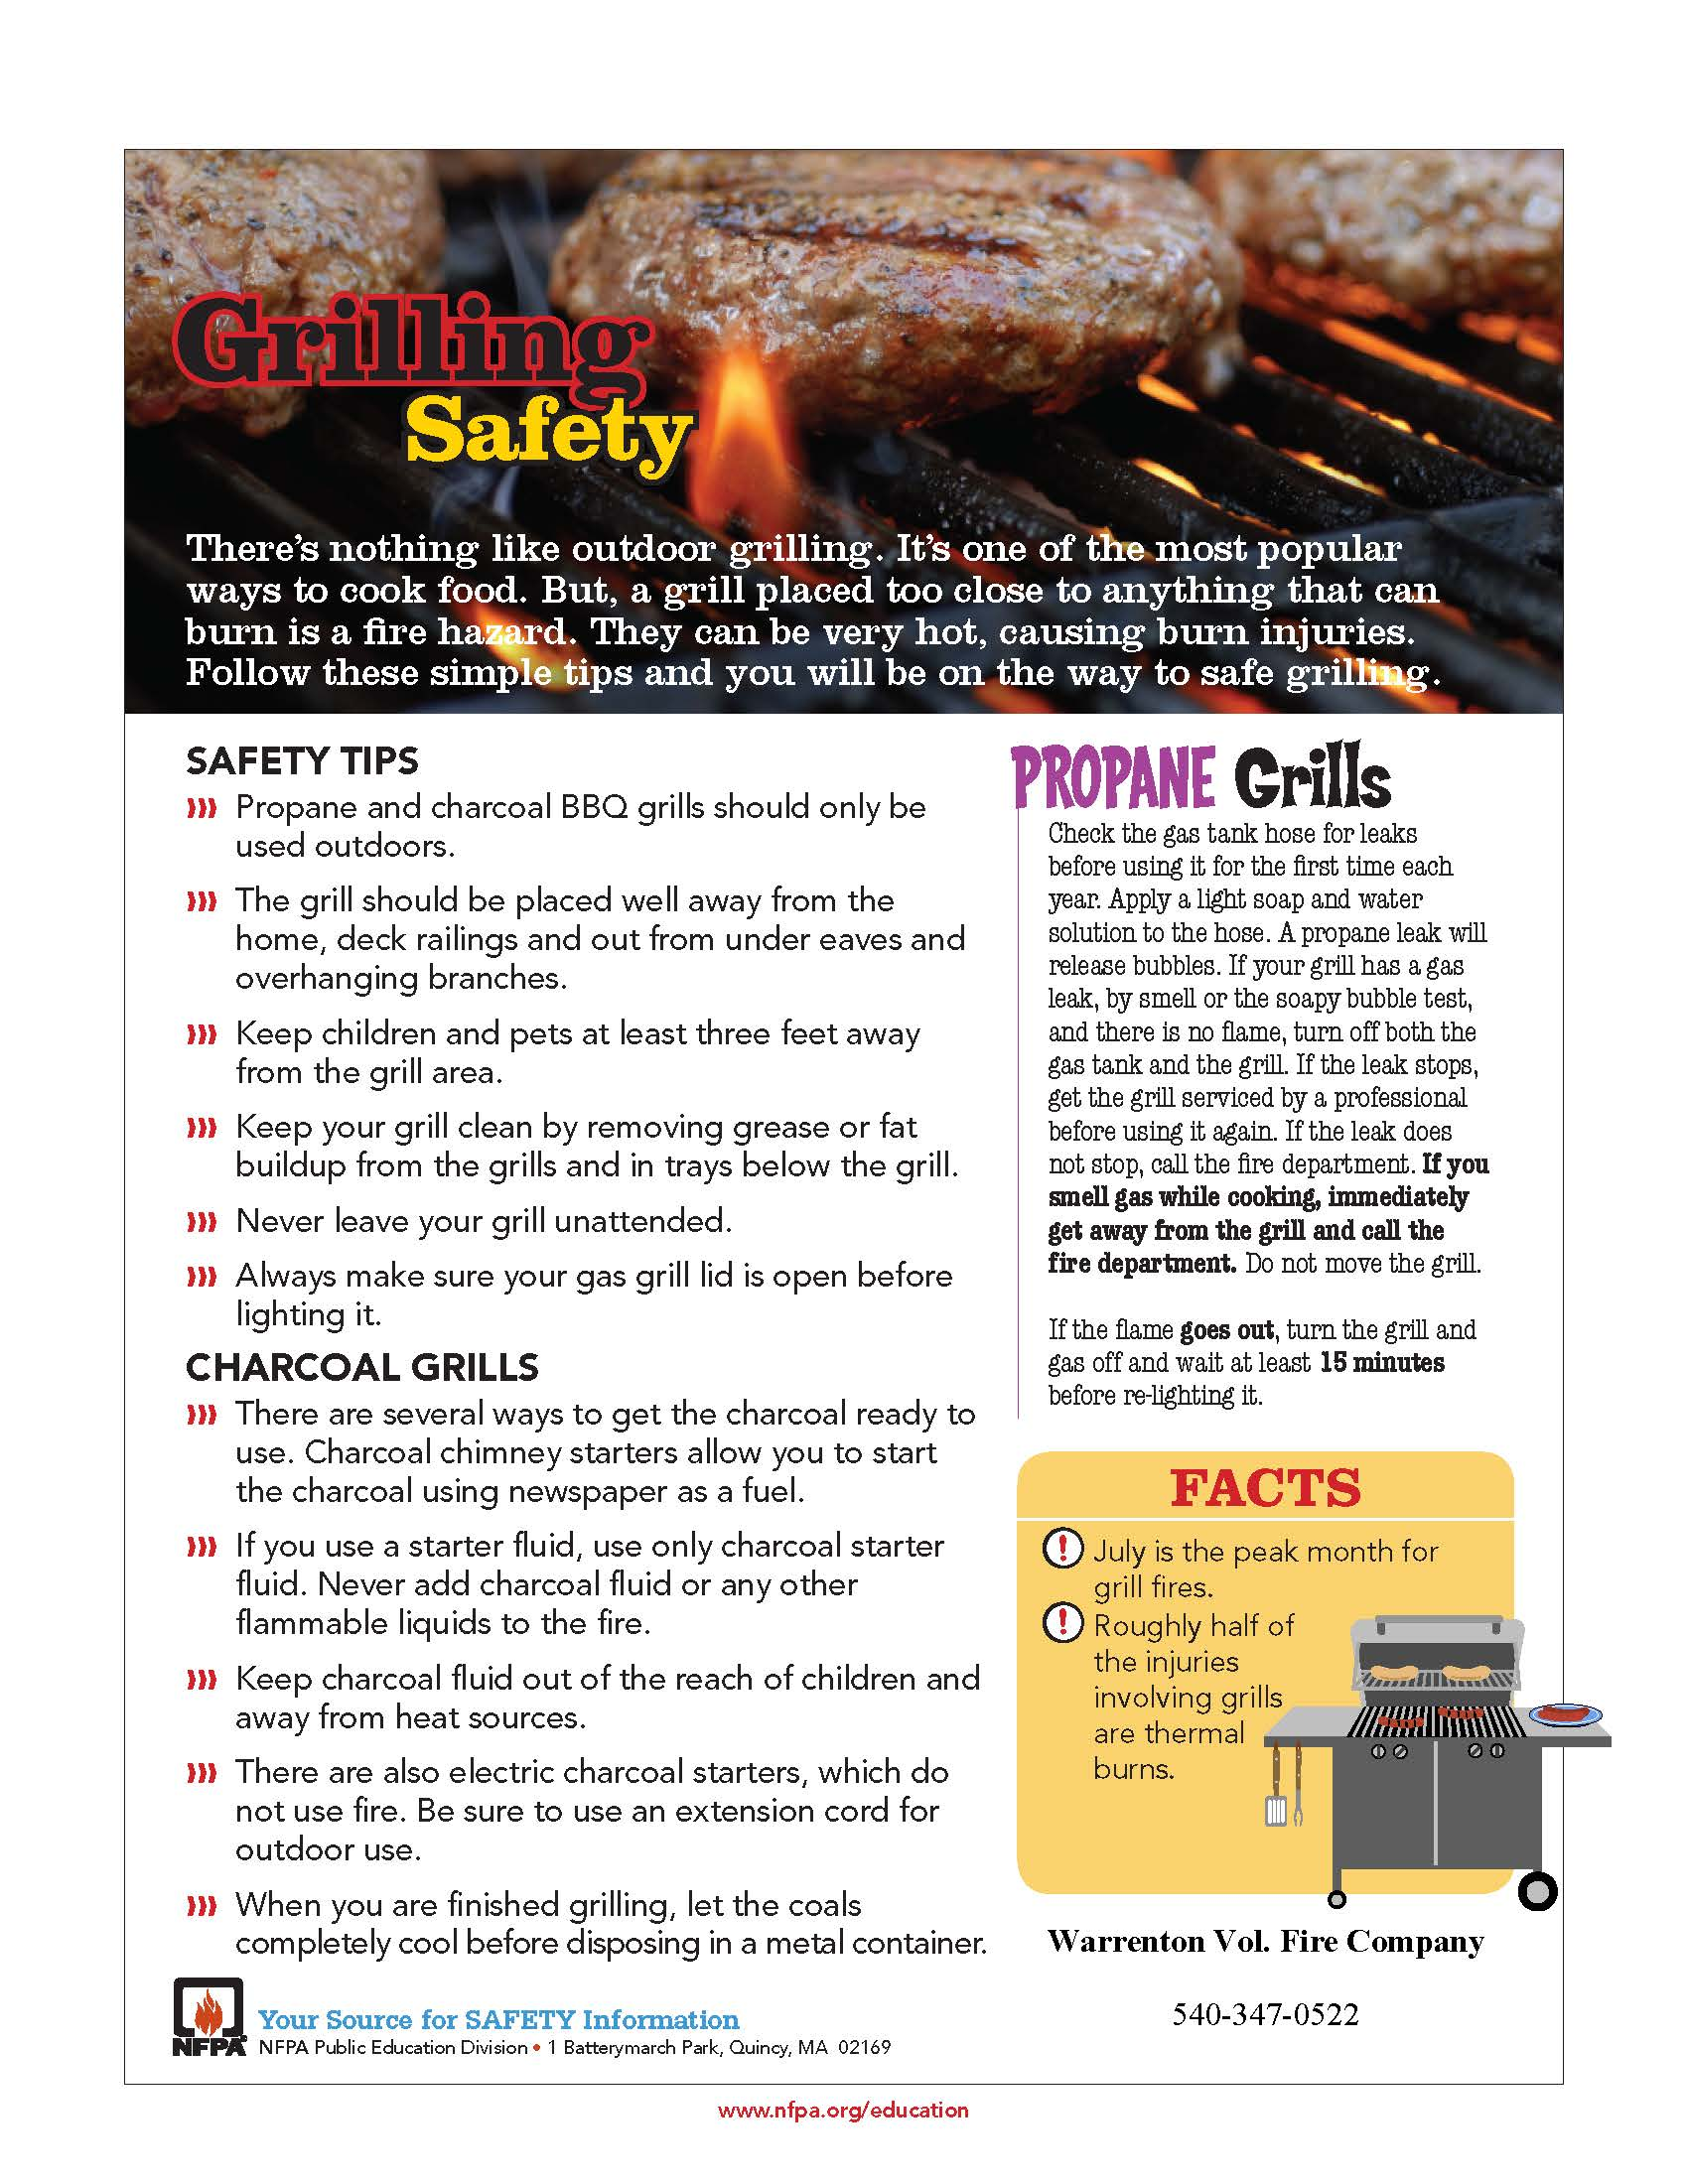 Fire Safety Tips For Grilling Warrenton Vol Fire Co